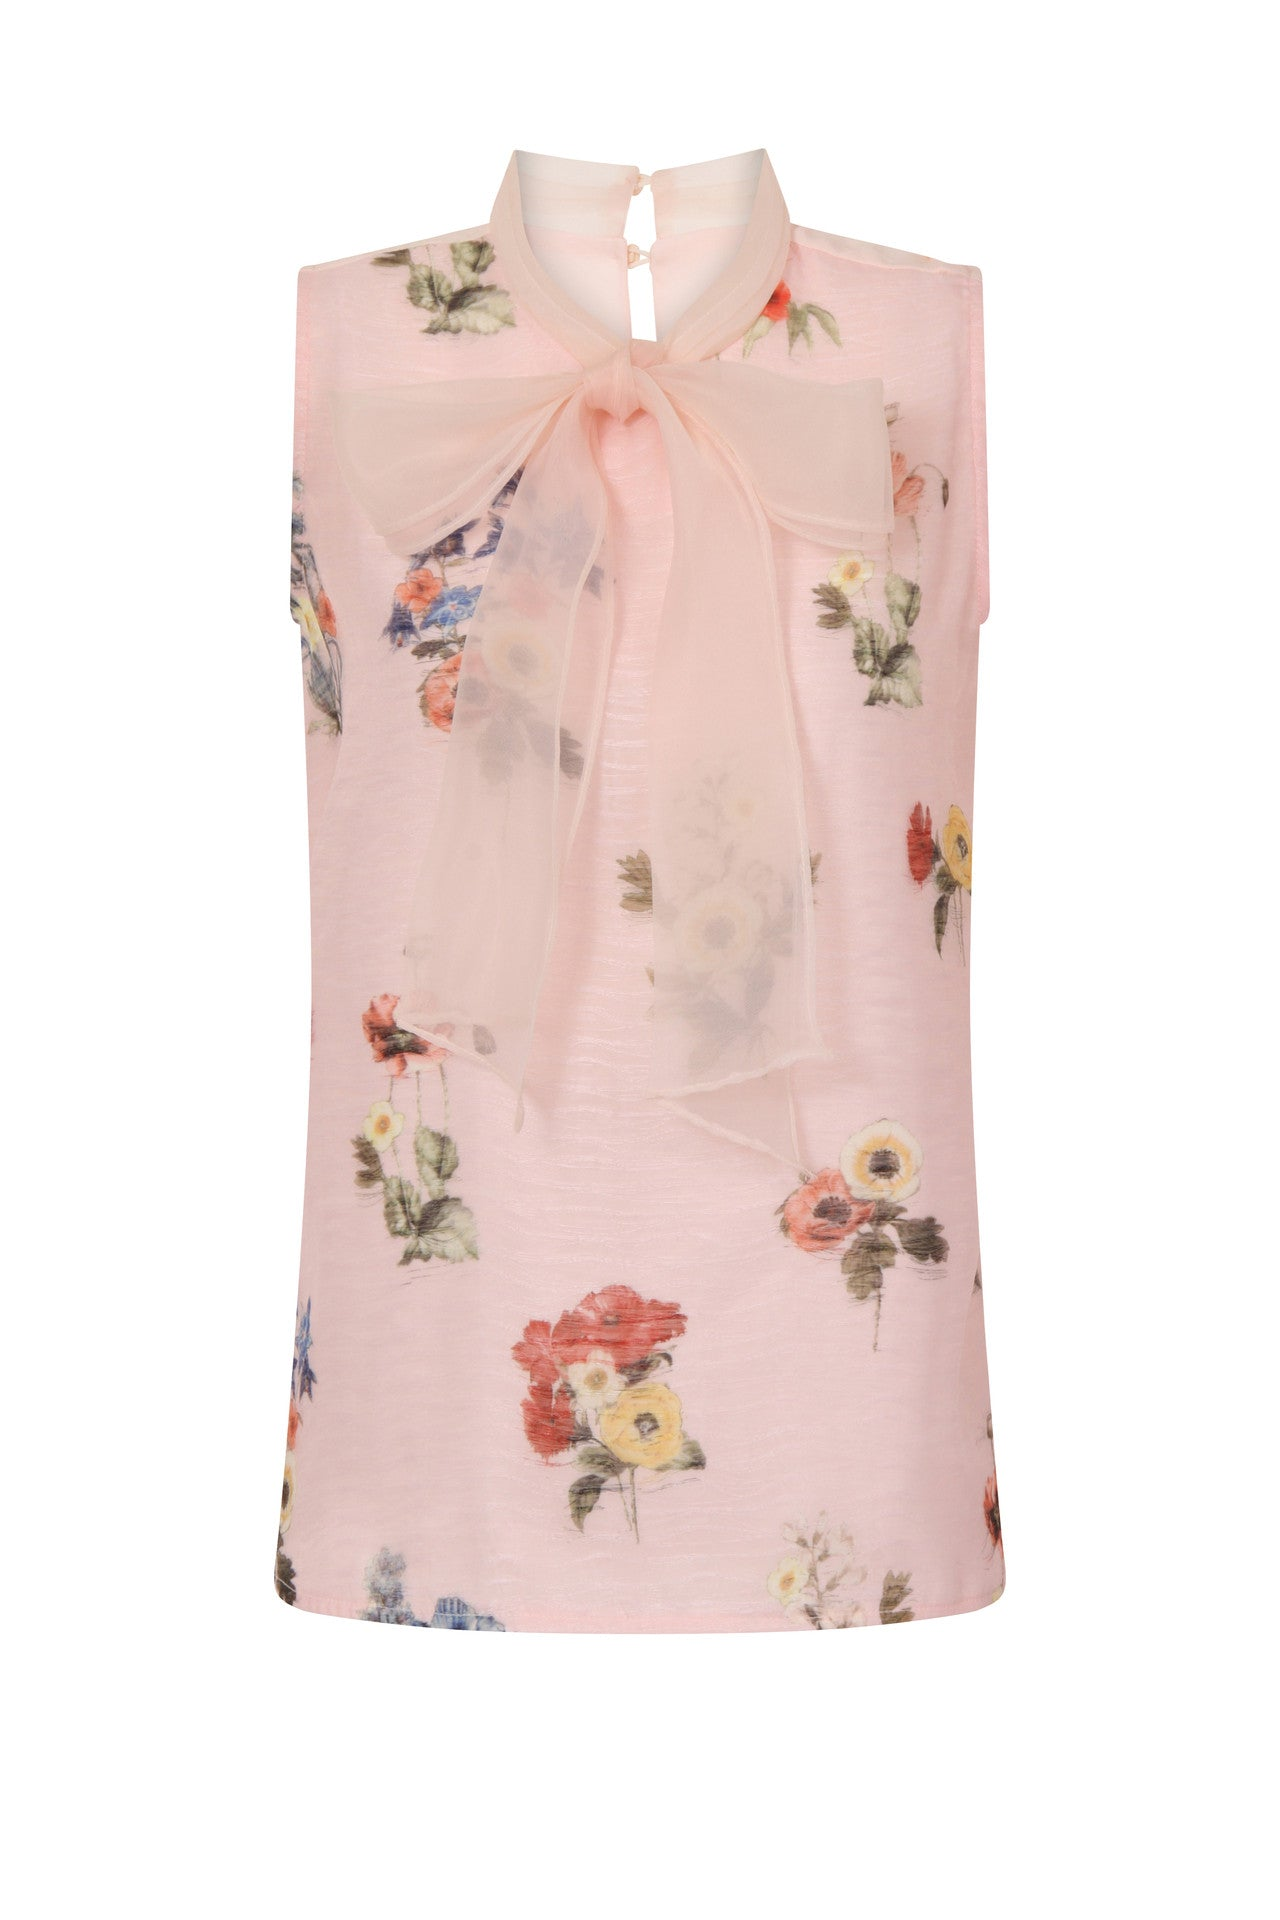 FLORAL MAJOR BOW TOP - Darccy & Soma London